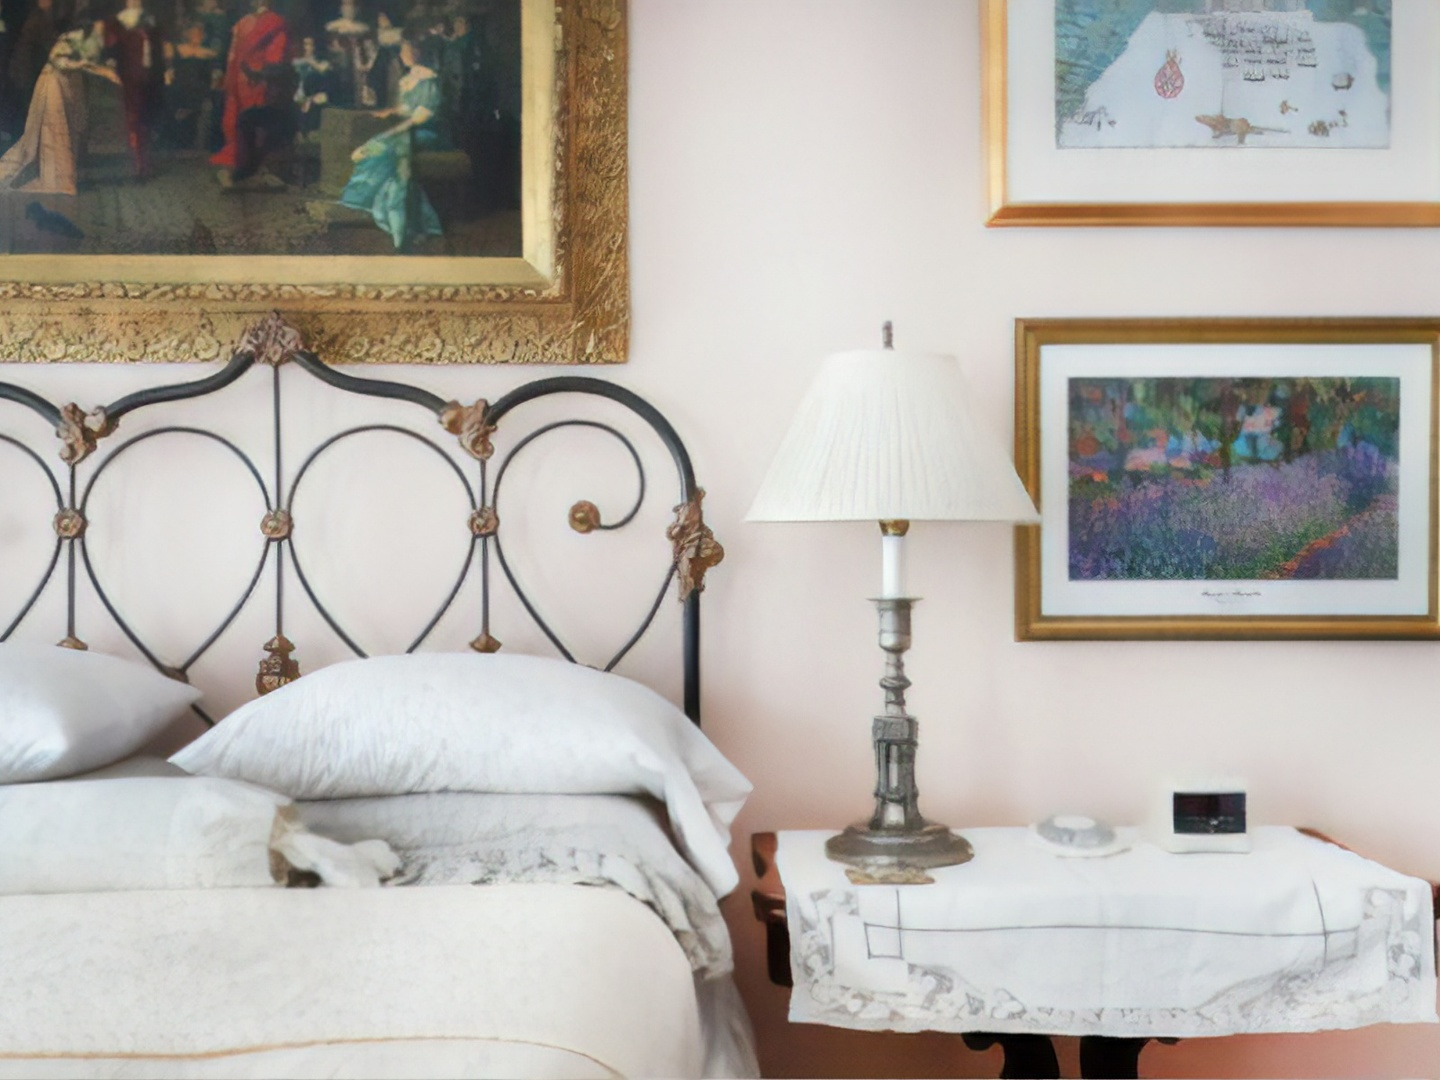 A bedroom with a bed and a painting on the wall at 1871 House.